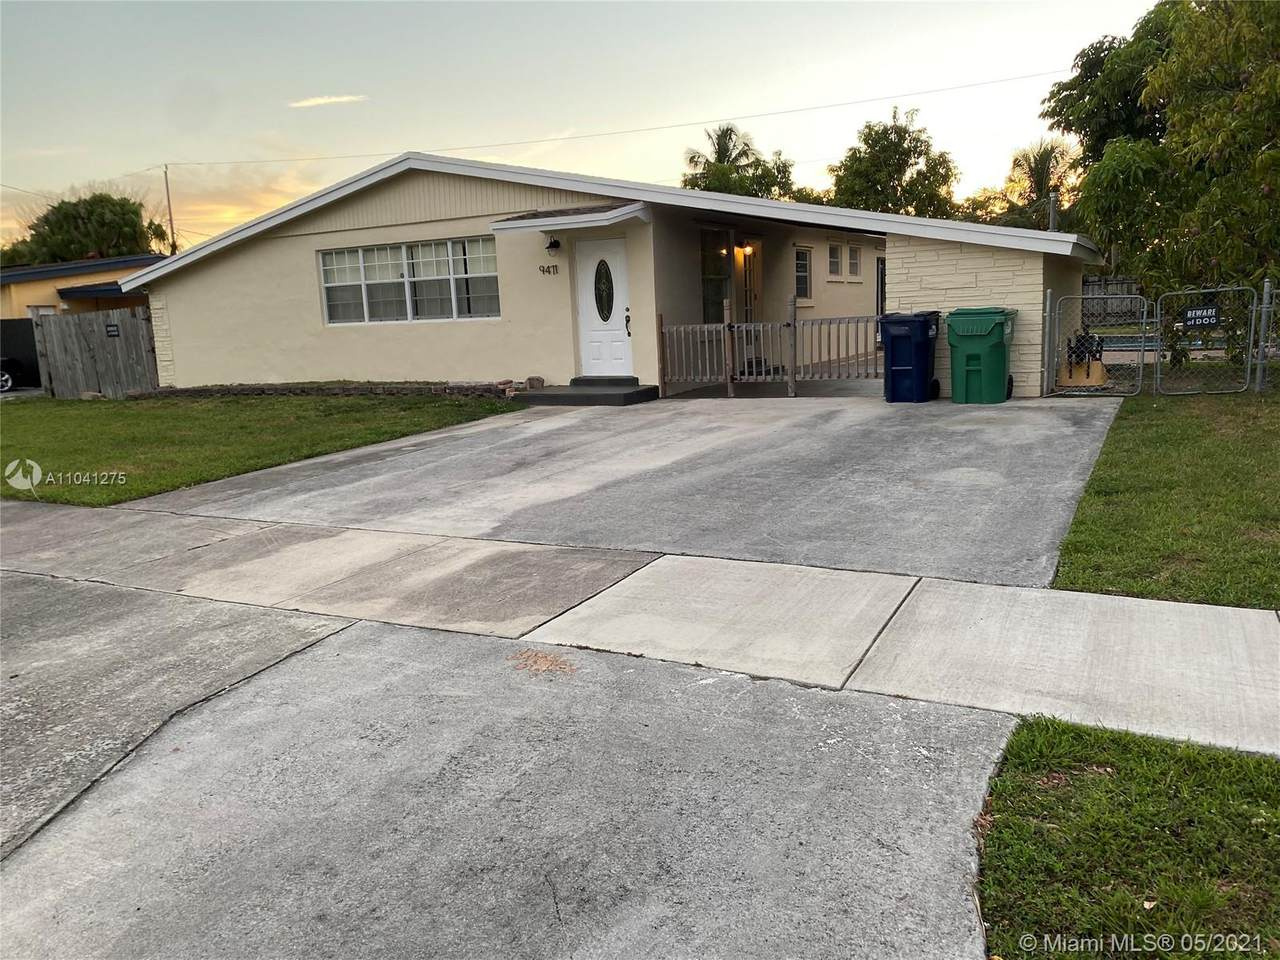 9471 Easter Rd - Photo 1